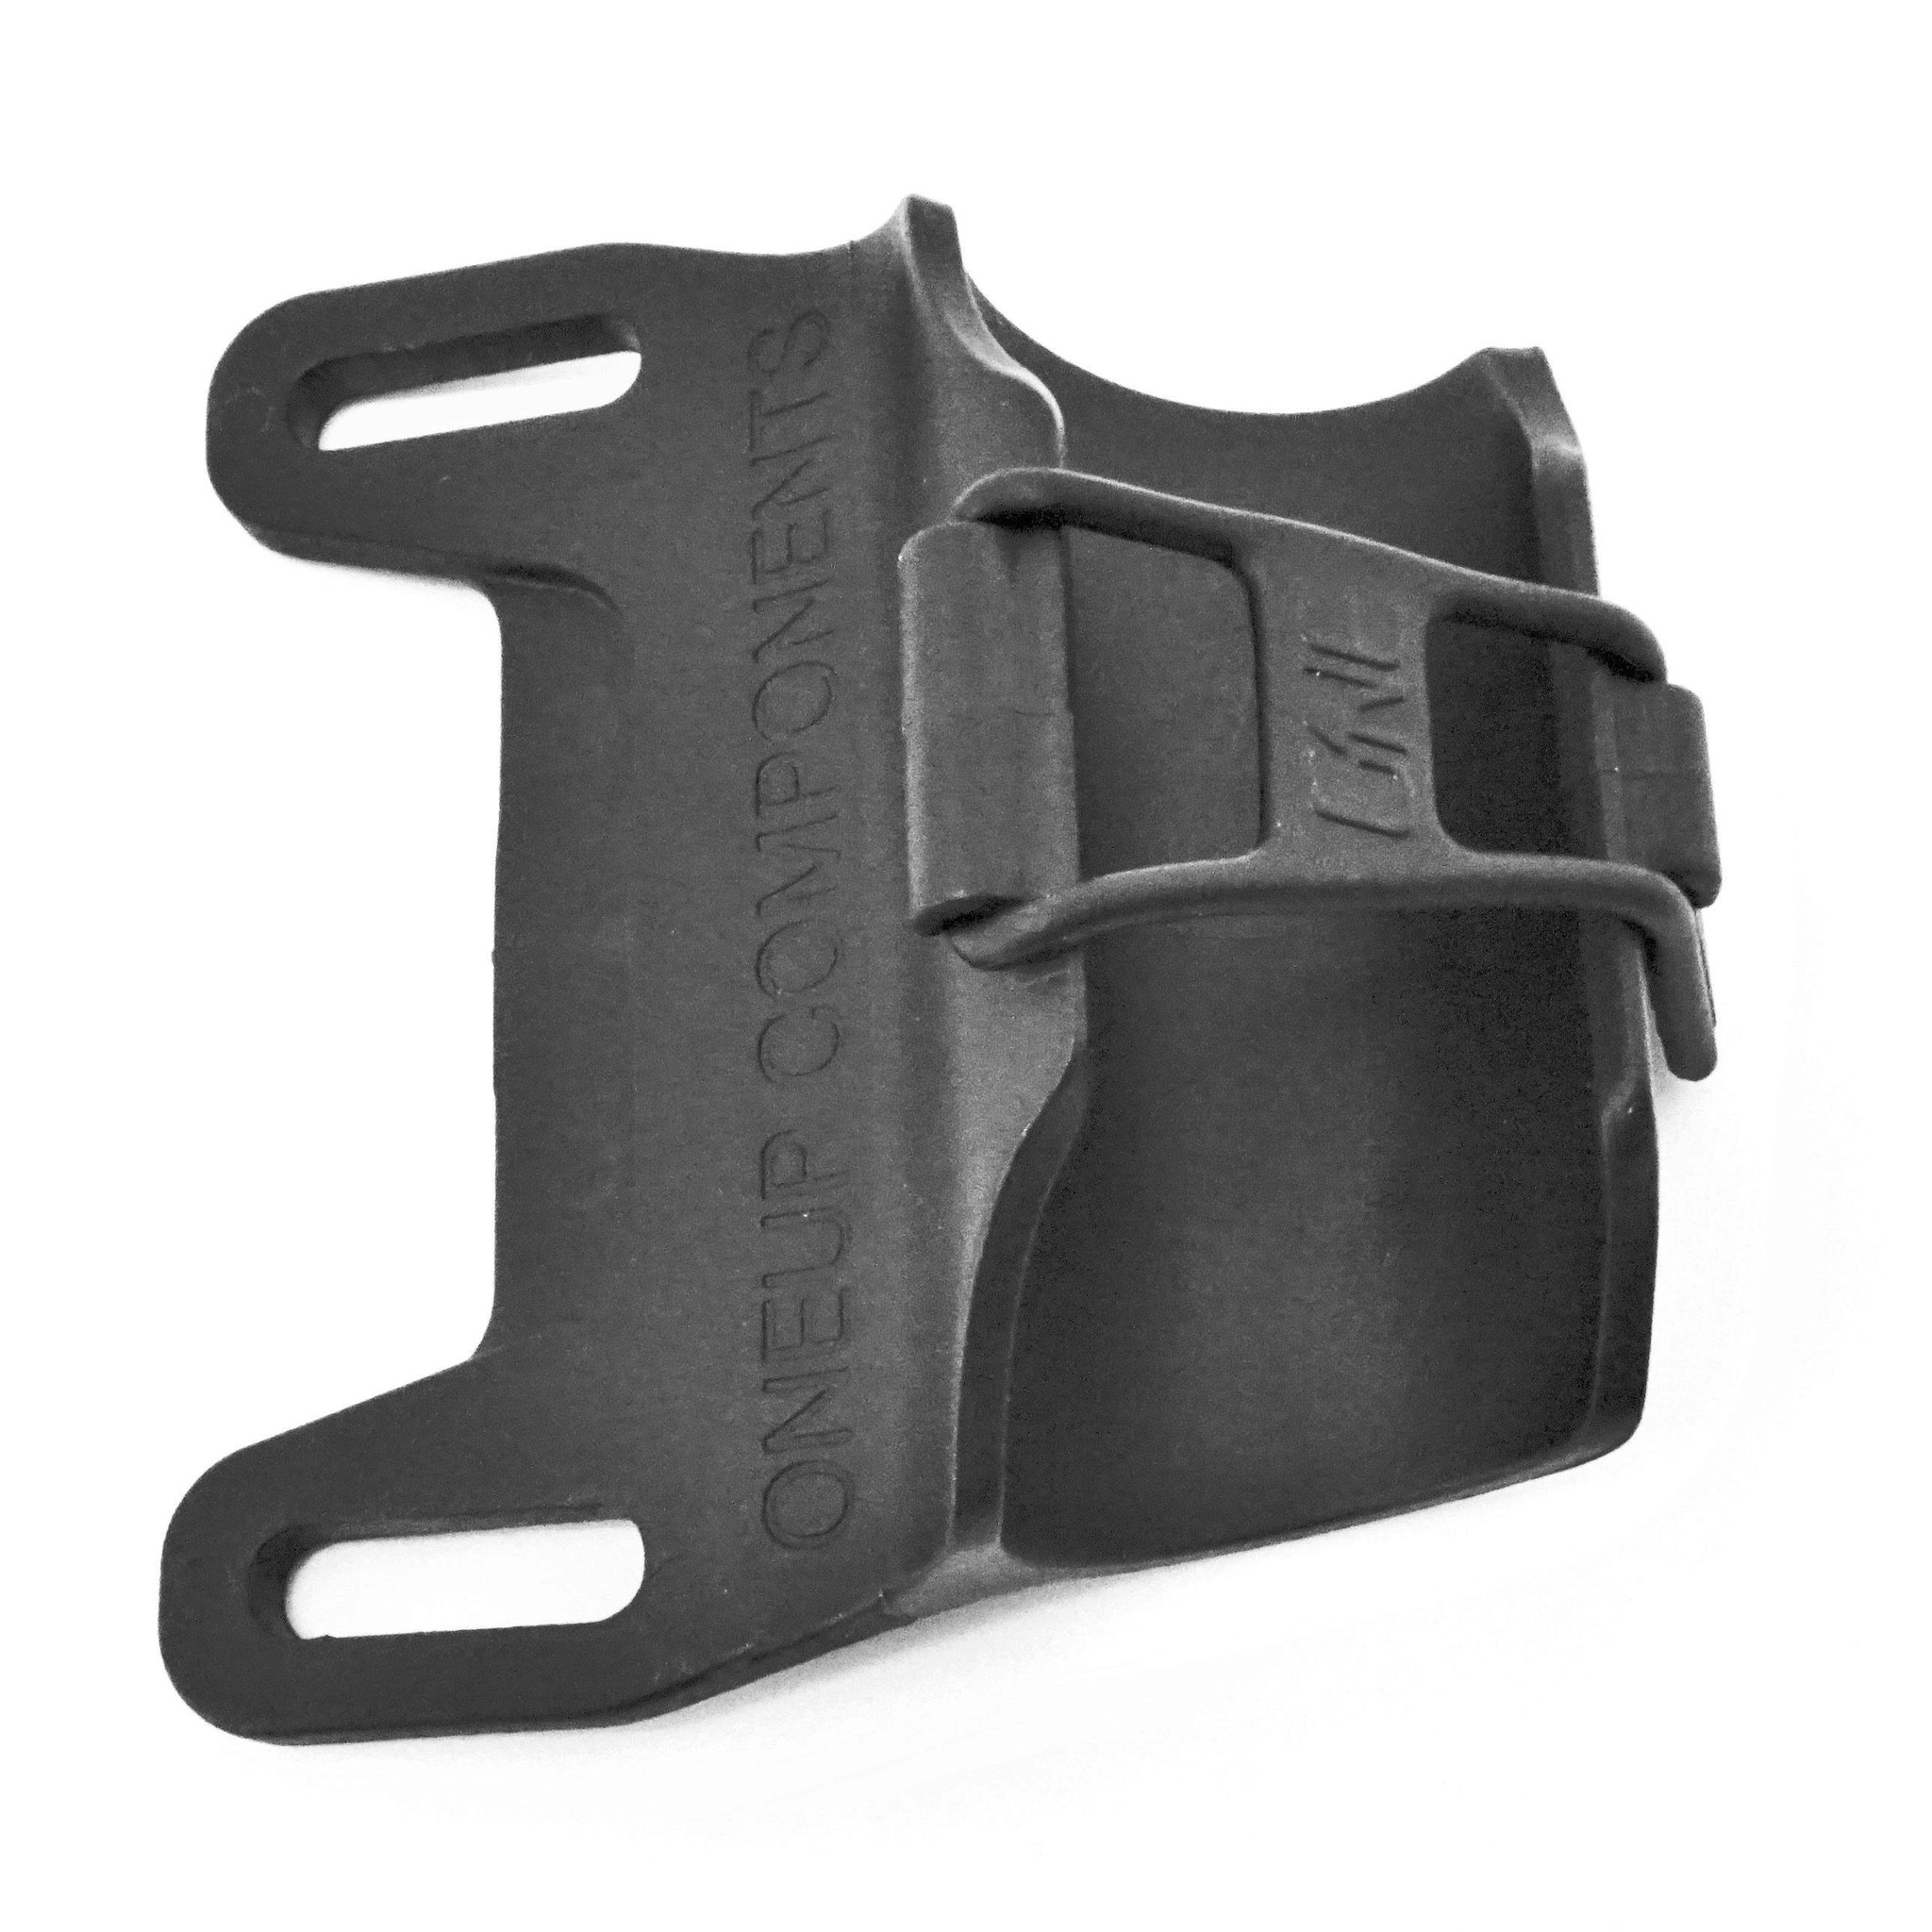 OneUp EDC Carry Pump - Spare Mount-1